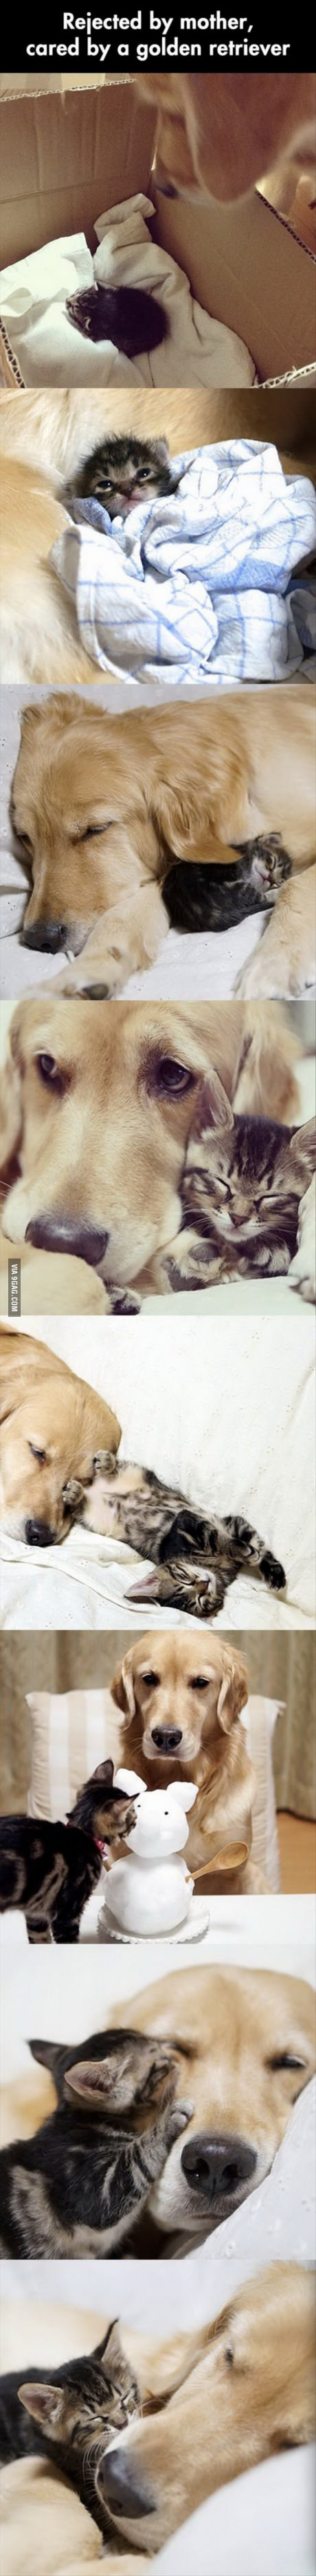 Golden retriever adopts a kitten that was abandoned by its mother